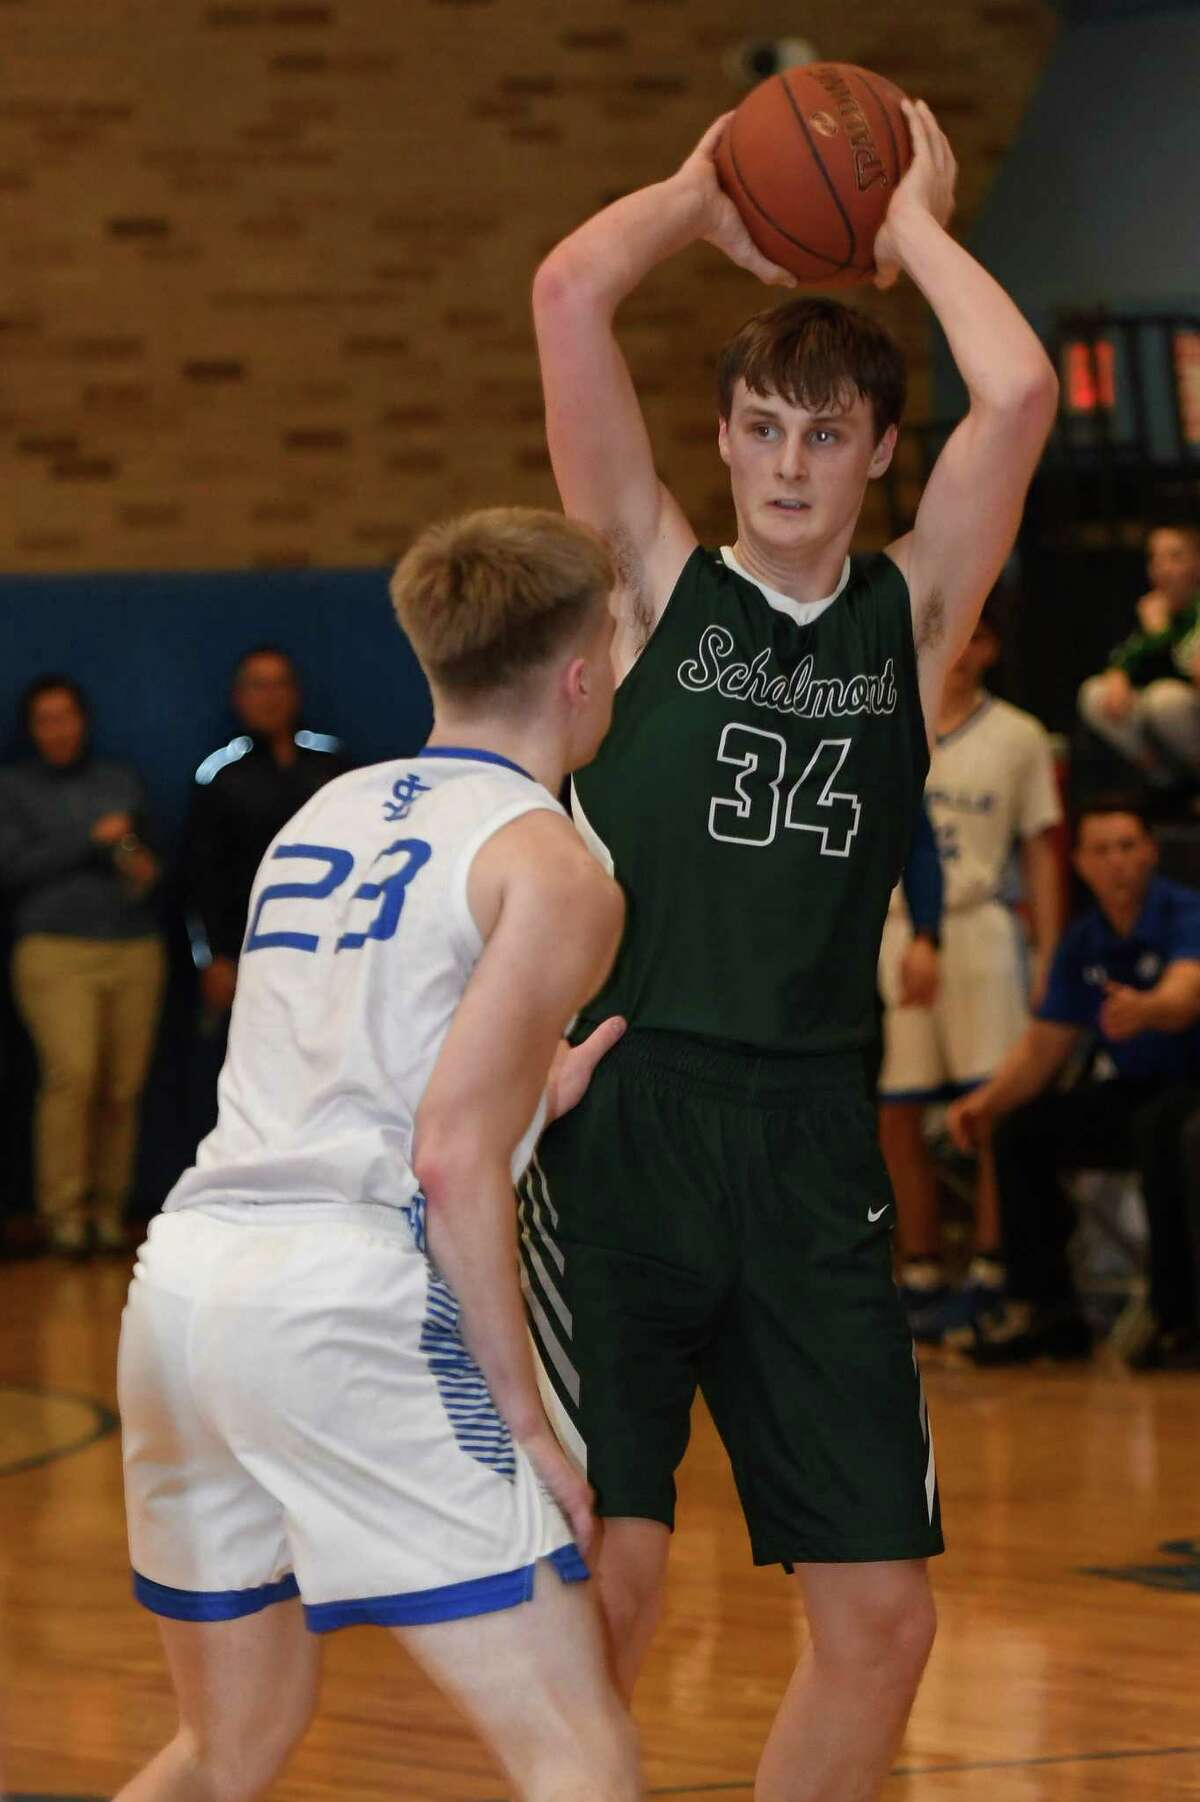 LaSalle's Bo Catherwood guards Schalmont's Shane O'Dell during a game on Friday, Jan. 31, 2020, in Troy, N.Y. (Jenn March, Special to the Times Union )